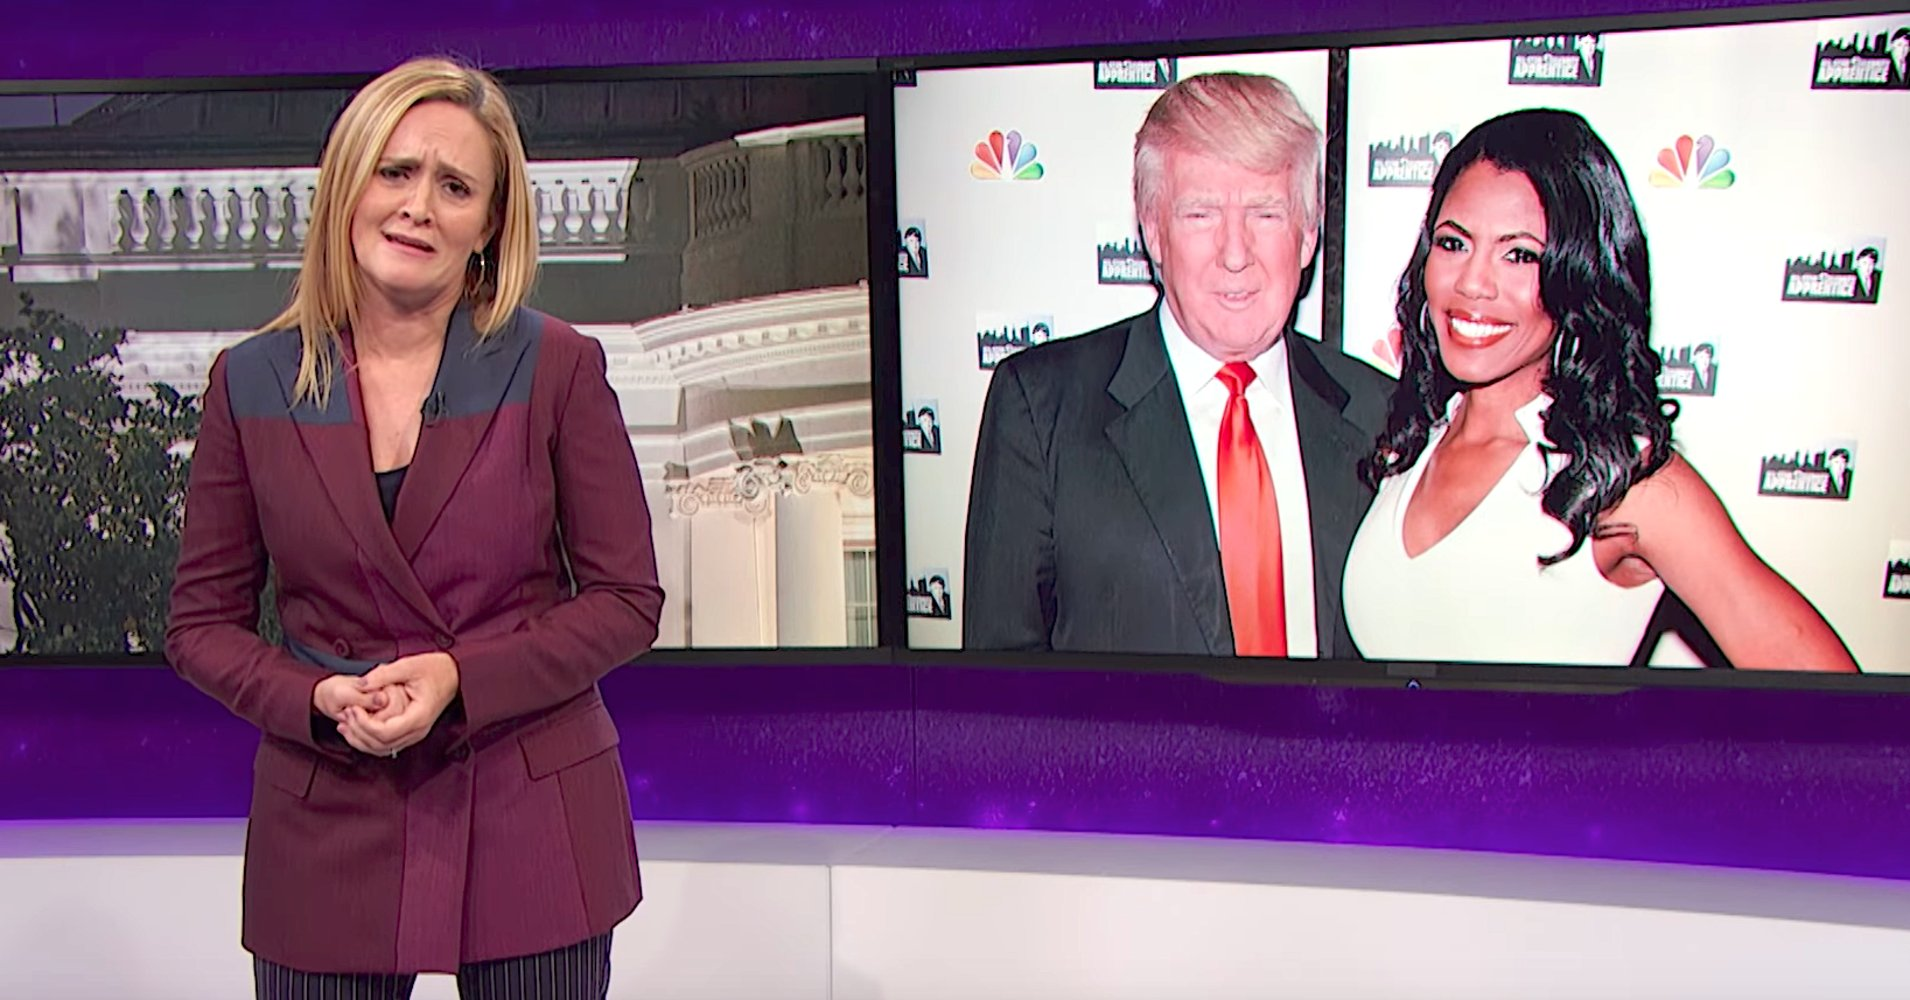 Sam Bee delivers blistering assessment of Trump's 'chaos muppet' Omarosa https://t.co/0SmC8kd0Id https://t.co/CRKT1Pjyyl